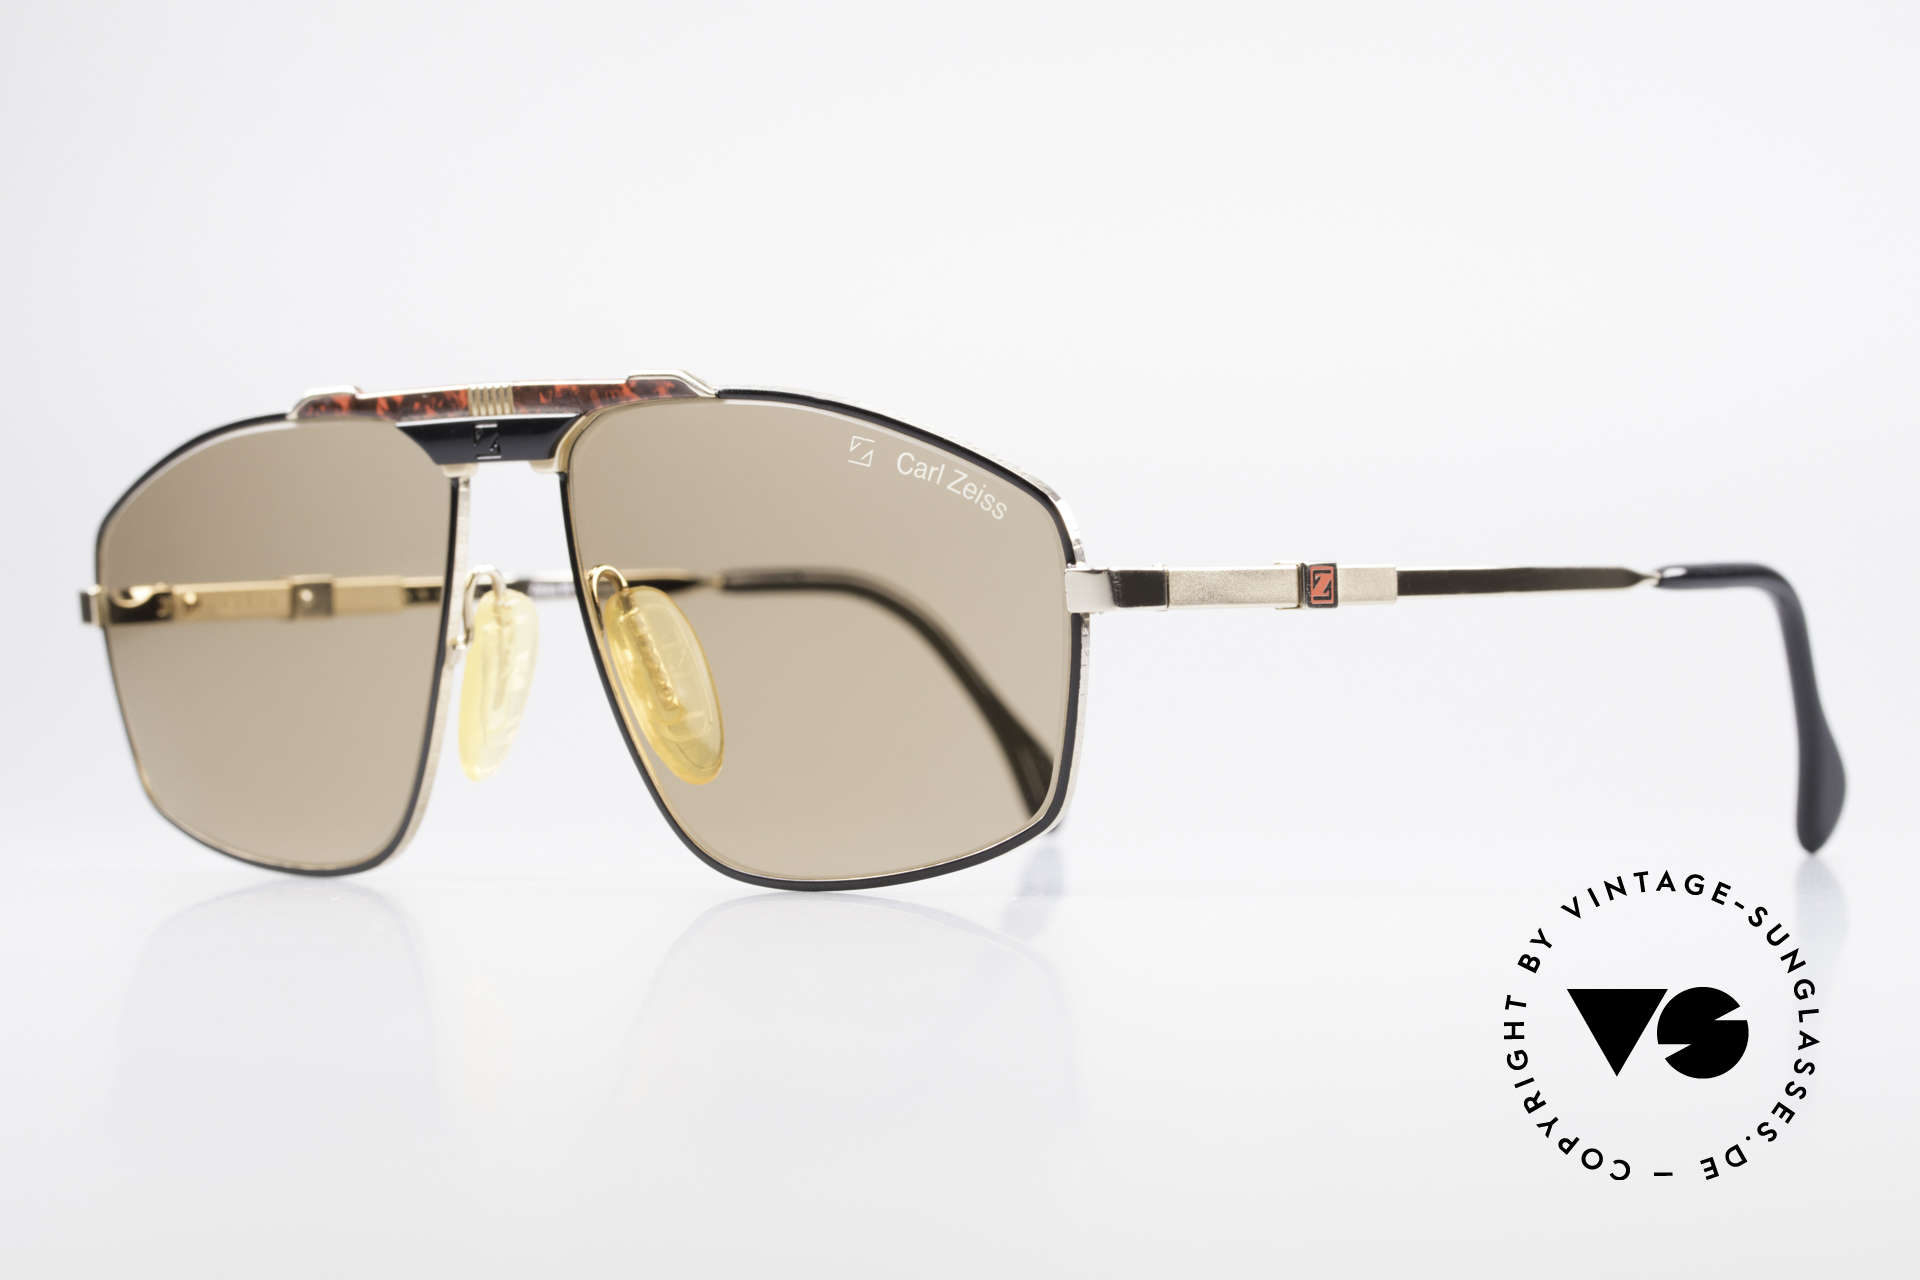 Zeiss 9925 Gentlemen's 80's Sunglasses, coated and non-reflecting lenses & adjustable temples, Made for Men